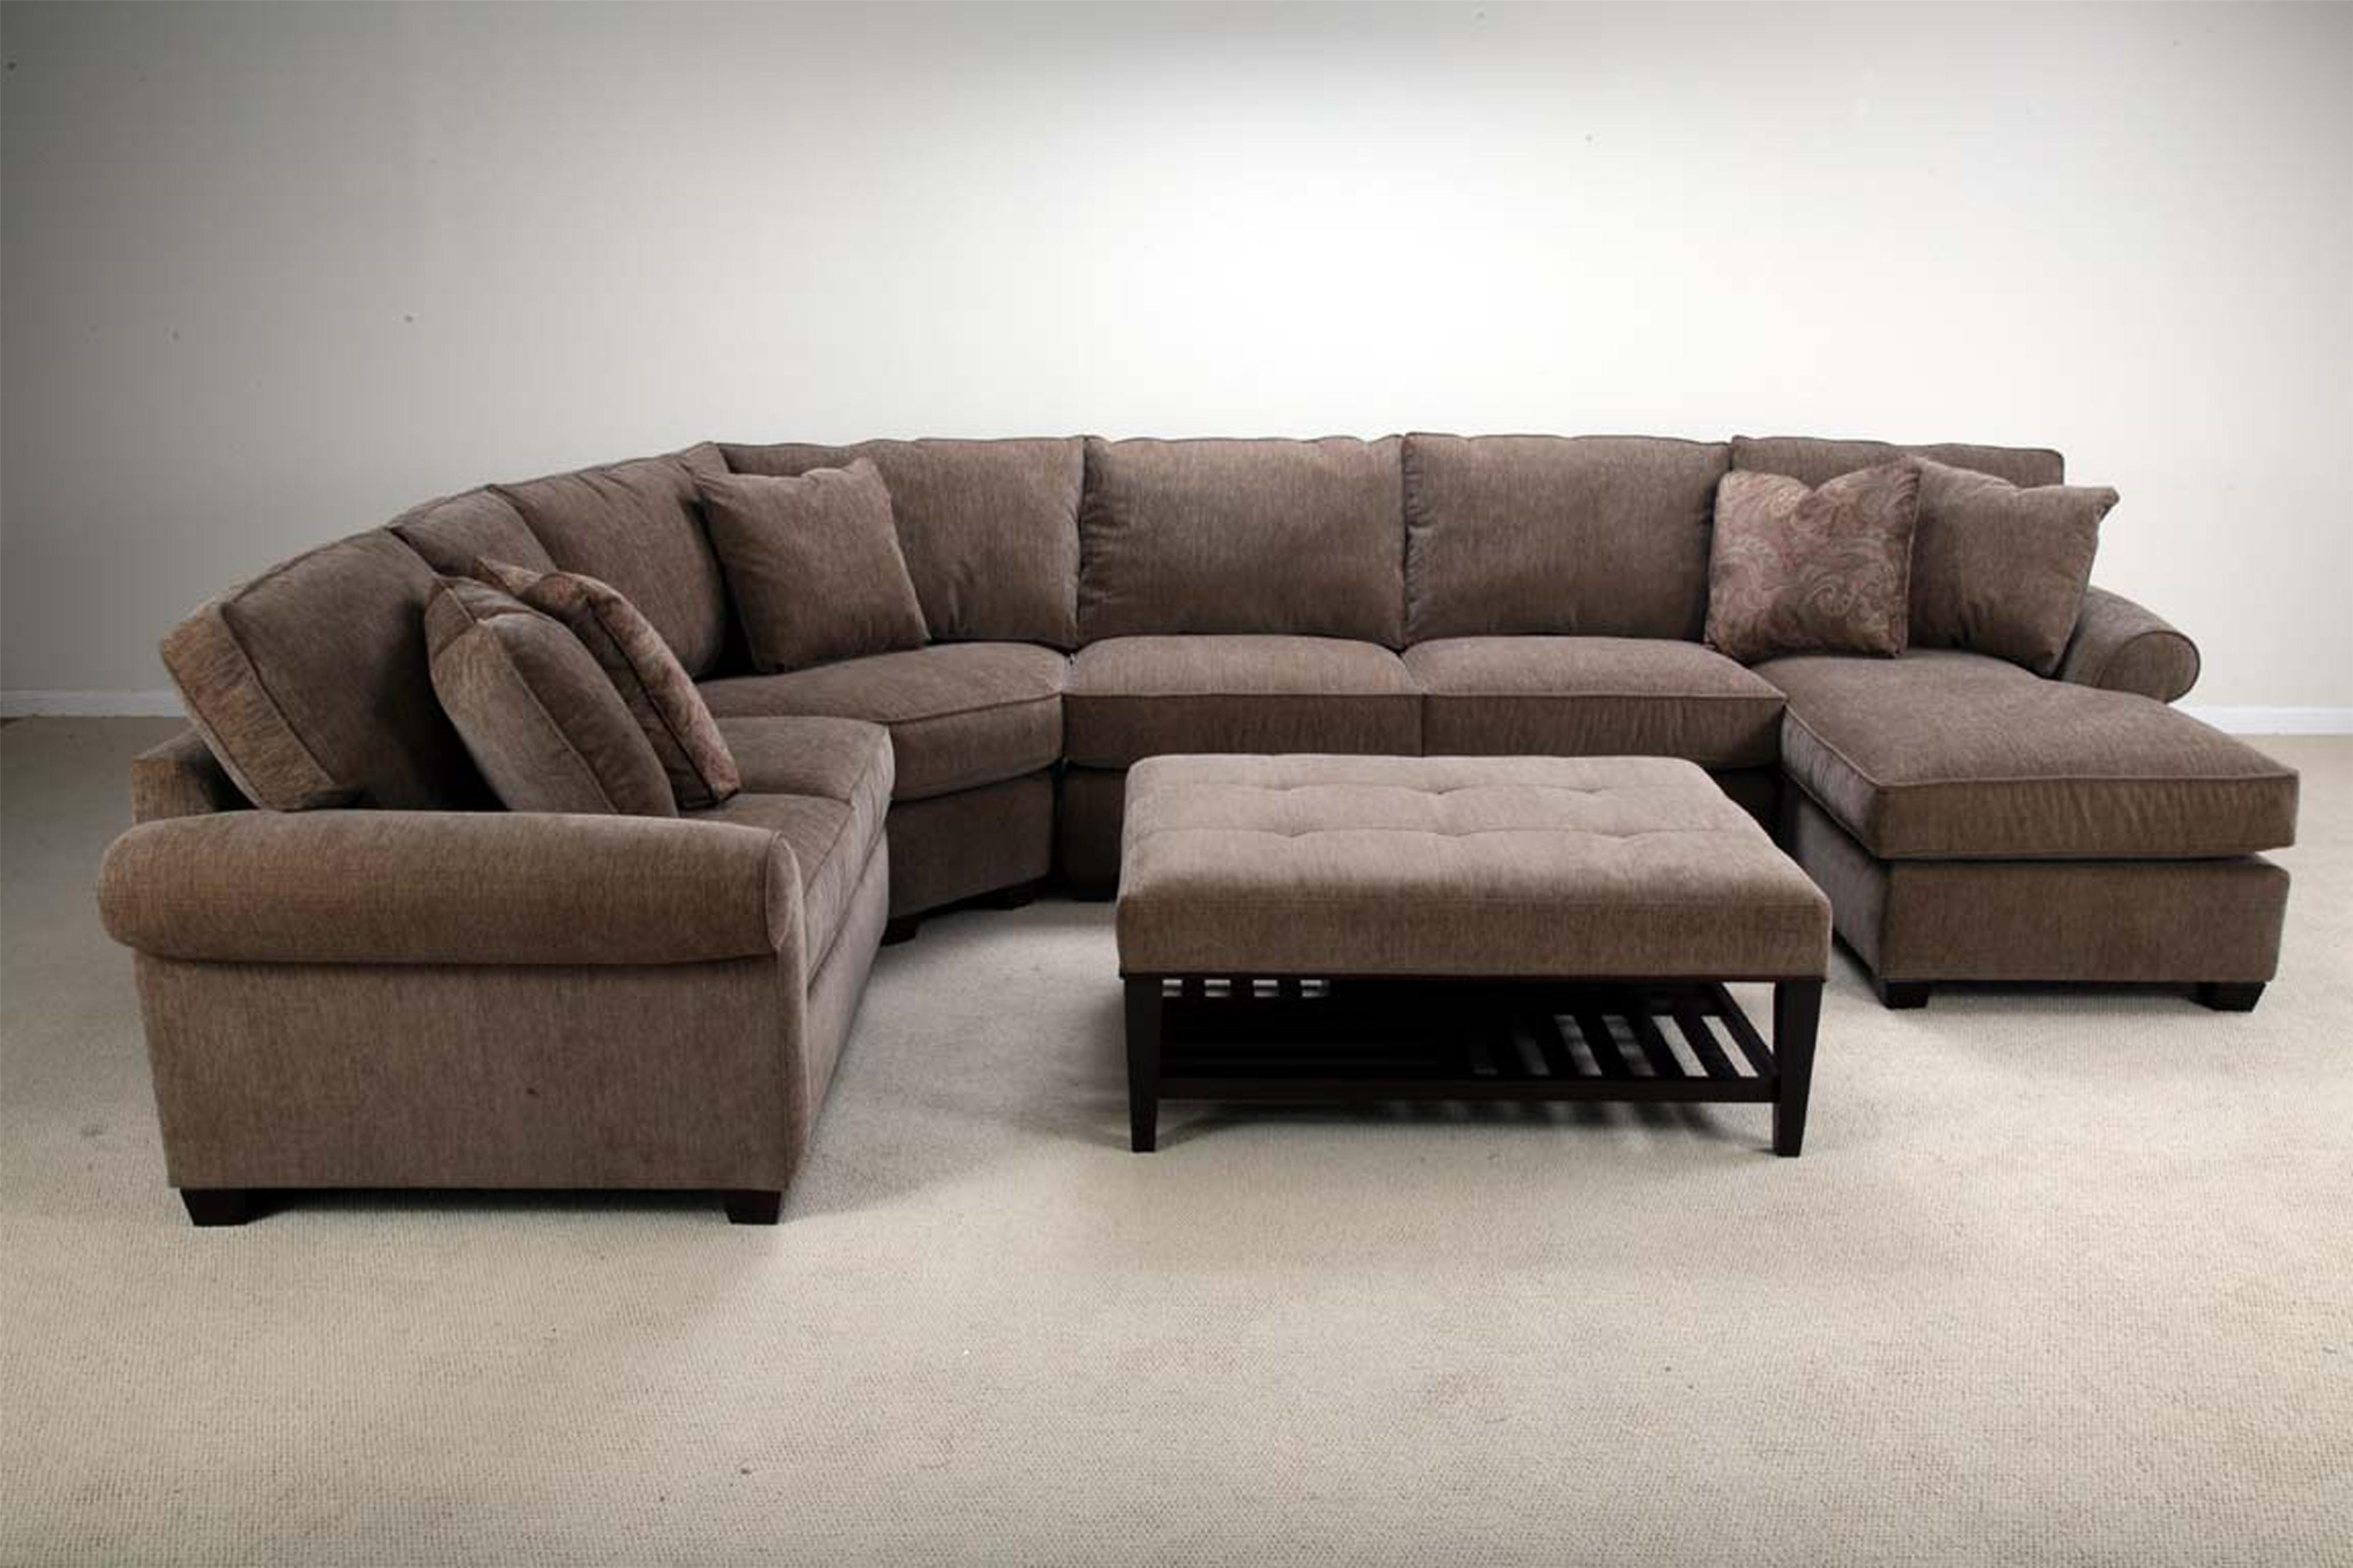 Bauhaus U09A Stationary Sectional with Right Facing Chaise AHFA